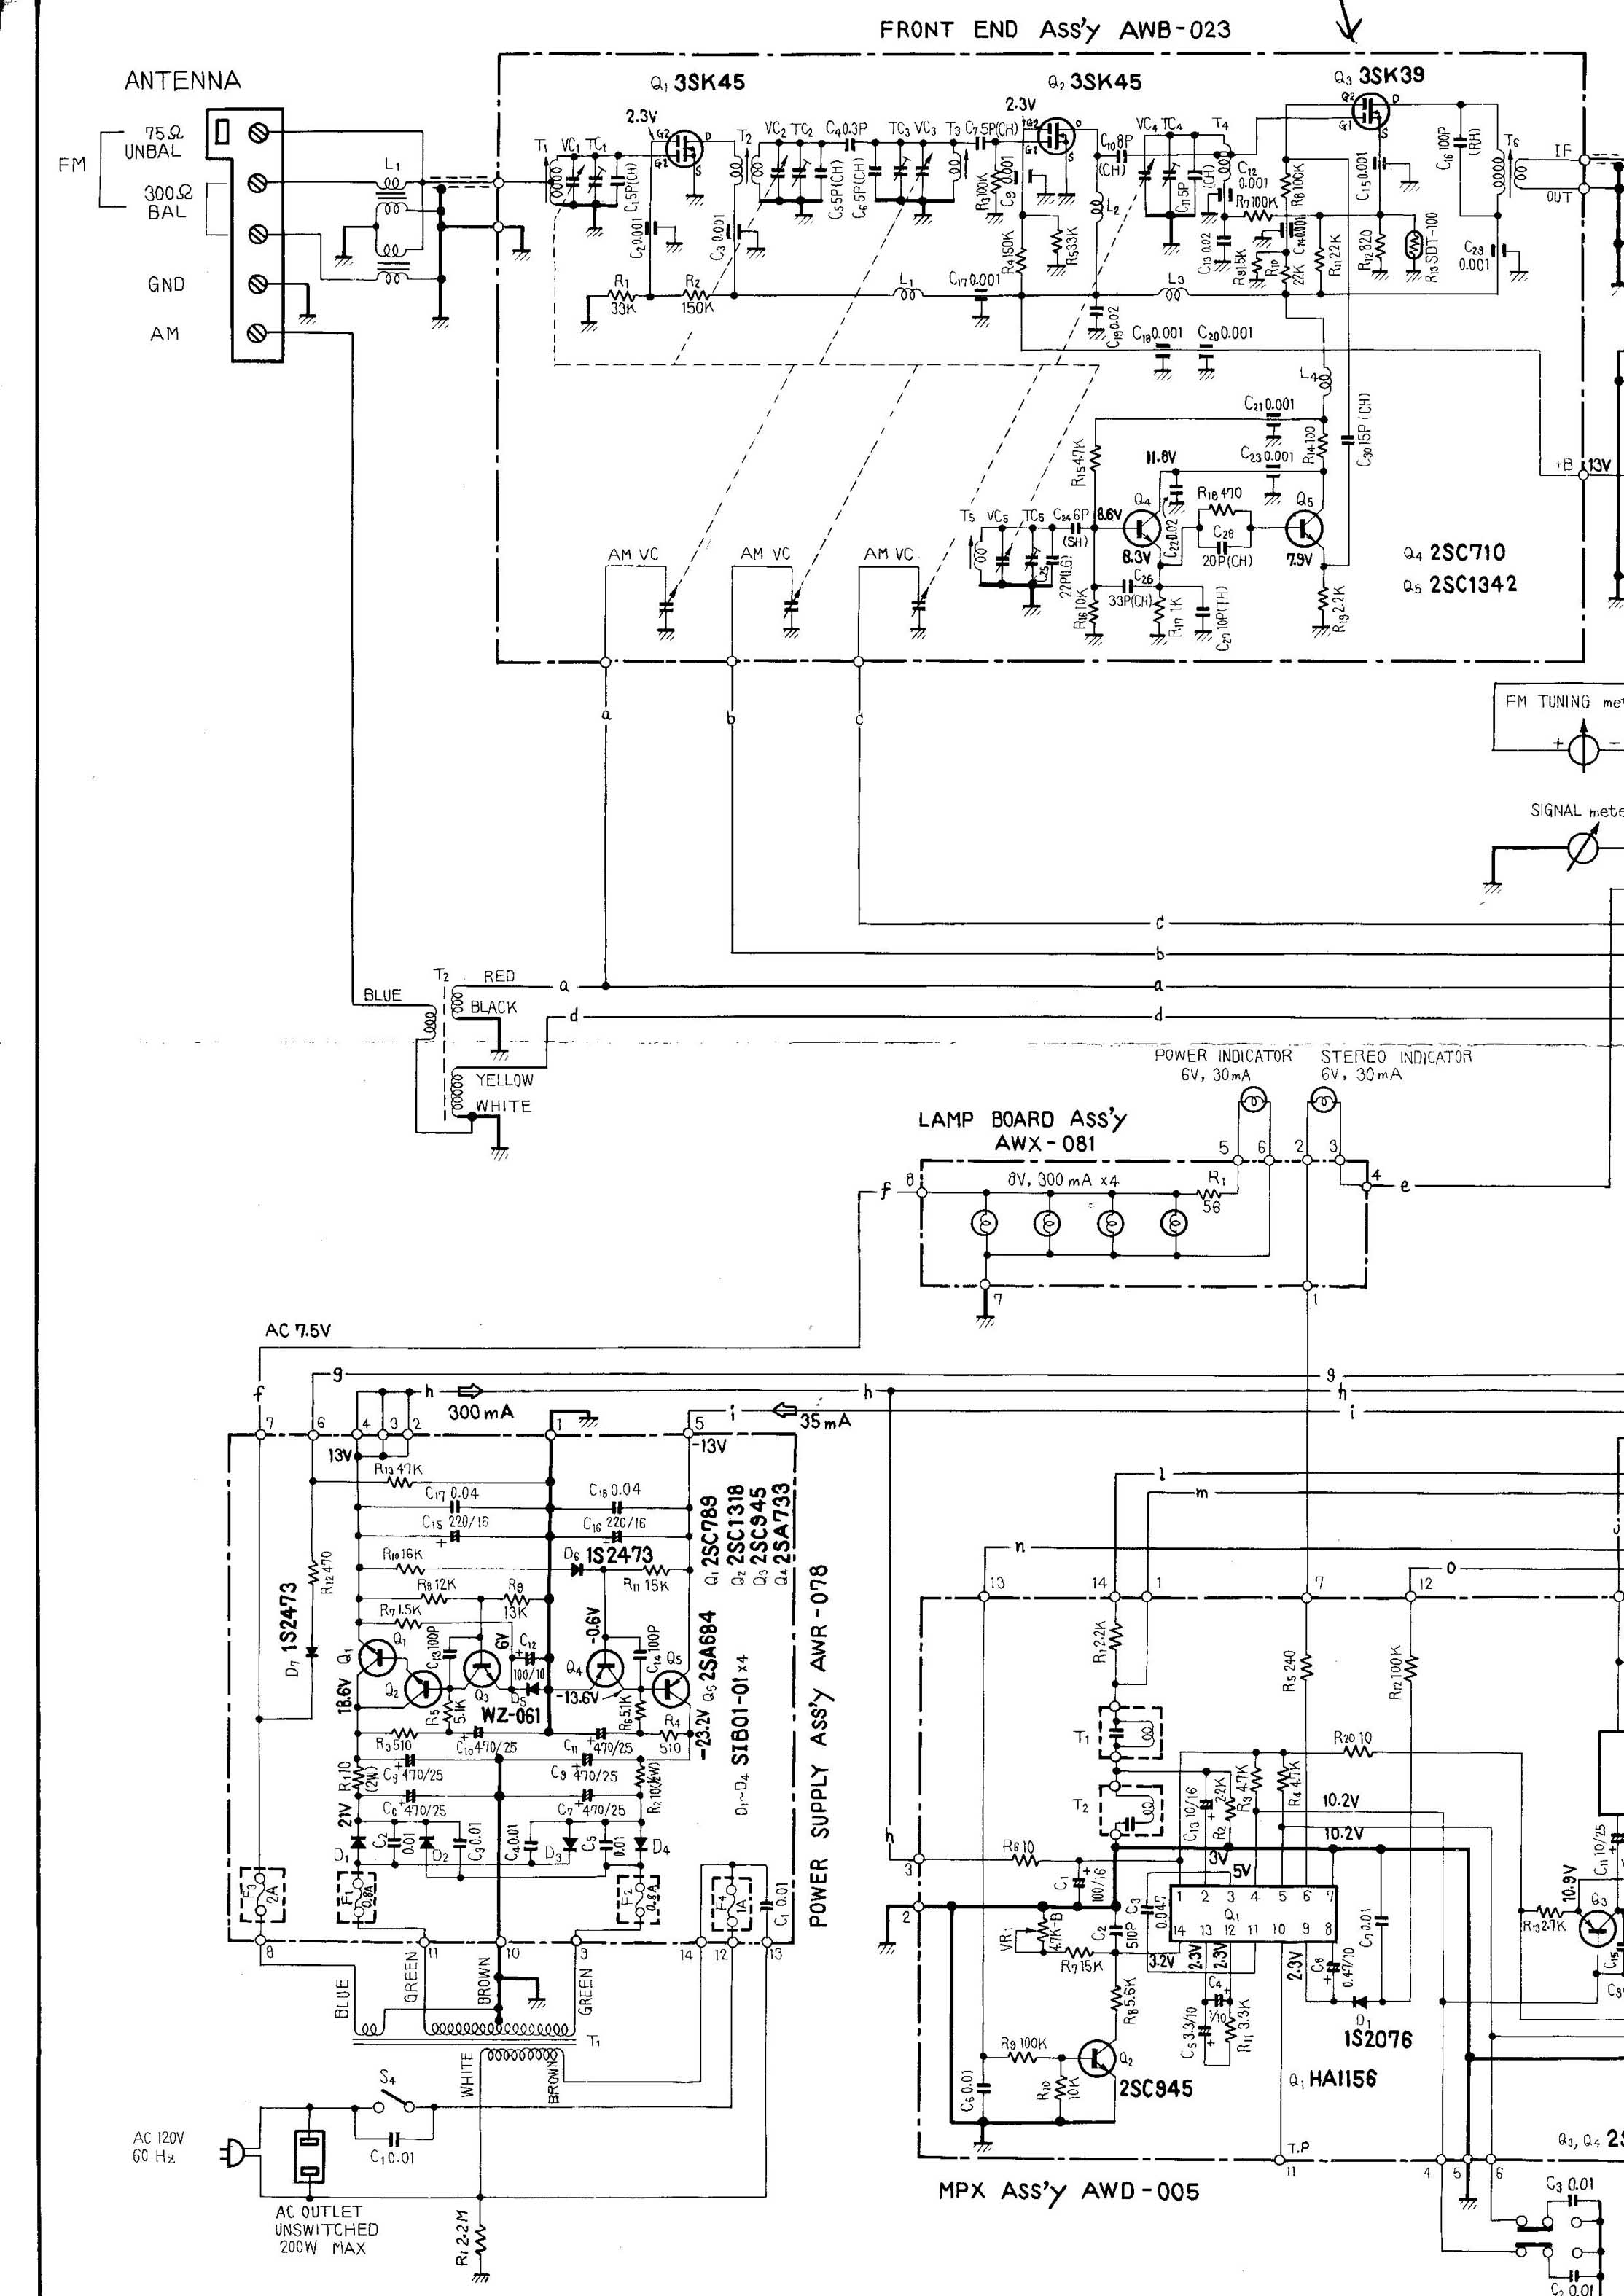 Schematic middle schematic right search ebay the tx 9500 has 5 gangs and 4 filters and is roughly equivalent in performance to a kenwood kt 7500